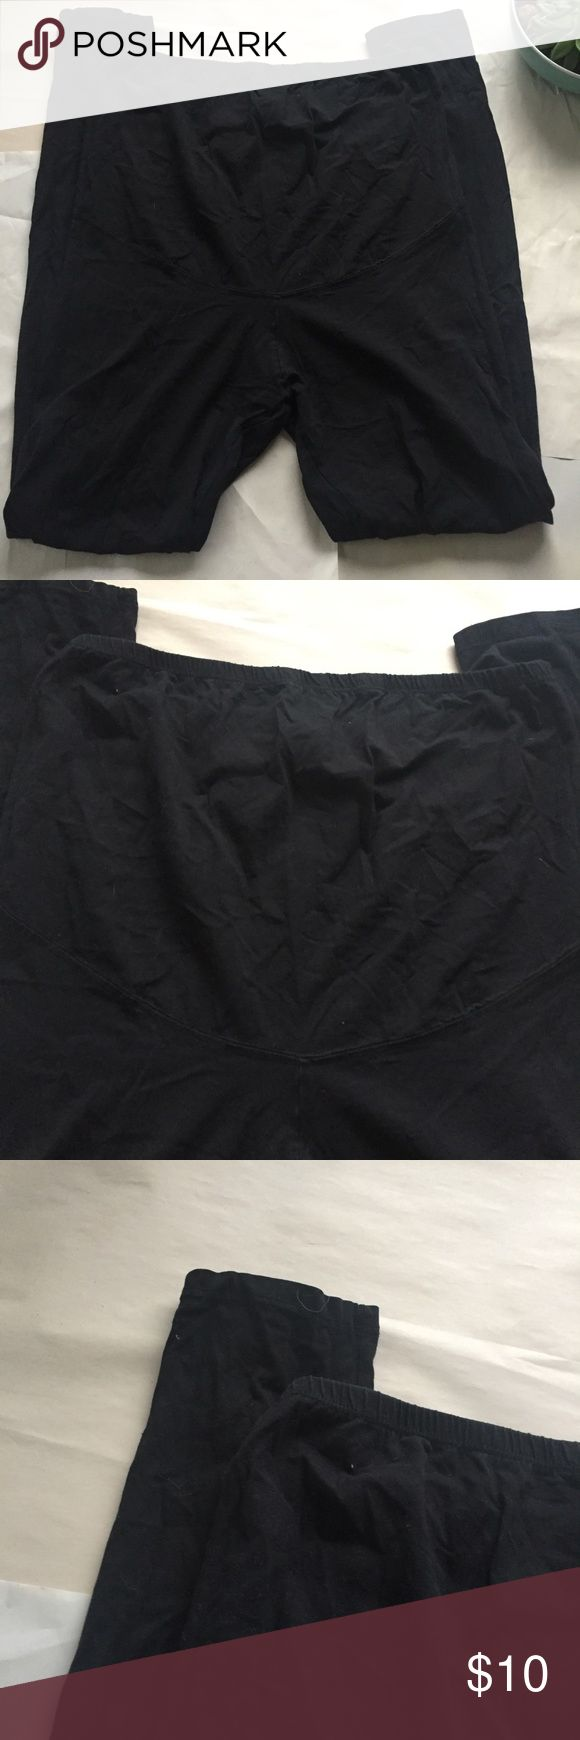 NWOT H&M Mama Black Maternity Leggings Perfect condition black classic leggings with extended waist band. Elastic around the top.   🌟same or next day shipping on all orders (except weekends)🌟make me an offer!🌟 H&M Pants Leggings